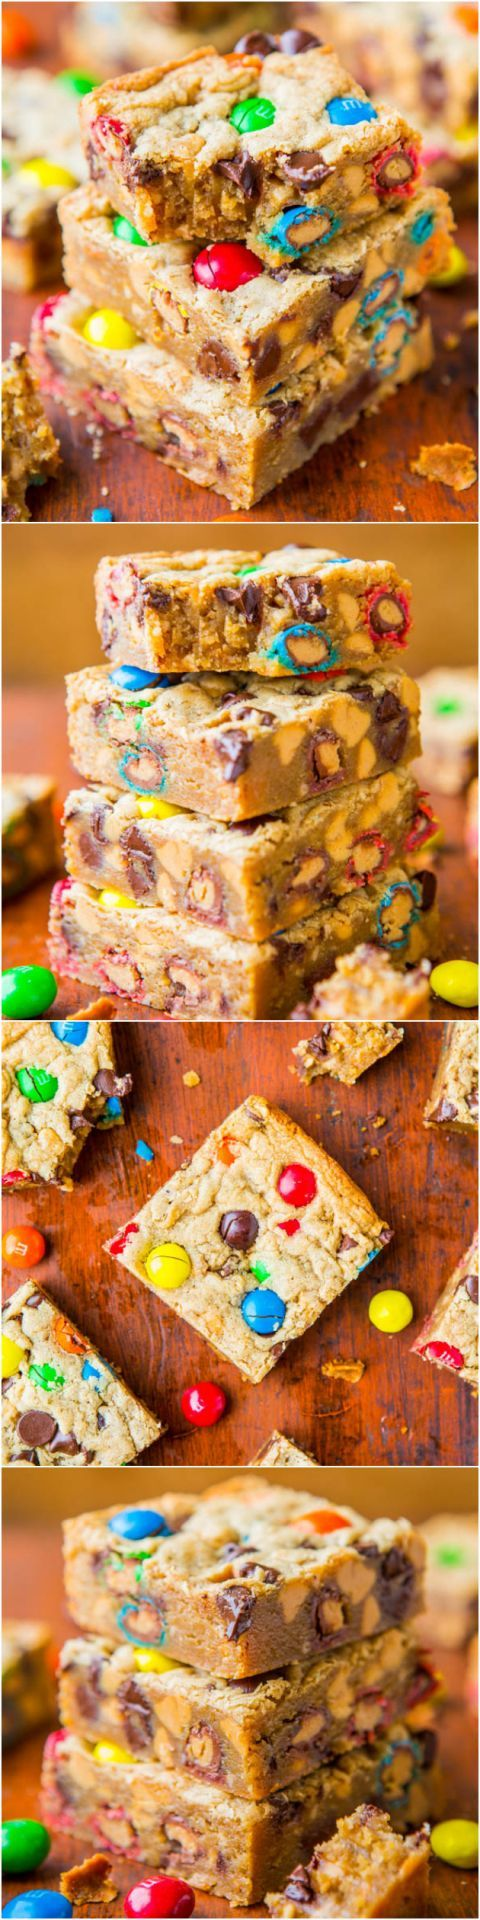 Triple Peanut Butter Monster Cookie Bars - Soft, gooey bars loaded with M&Ms, chocolate and made for serious peanut butter lovers!